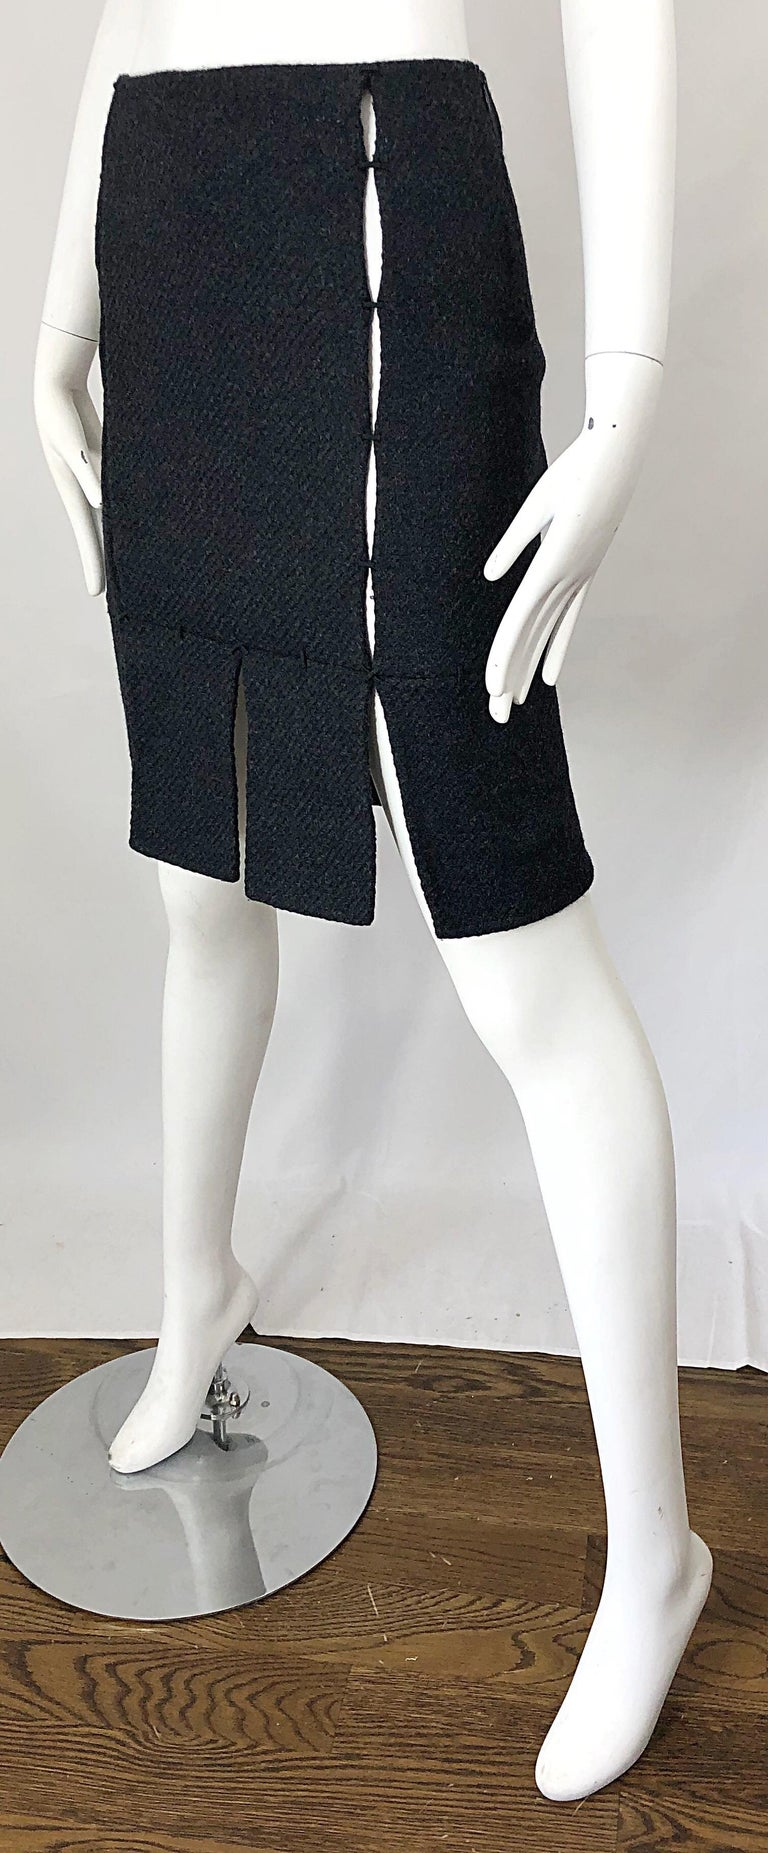 1990s Prada Charcoal Grey Cut - Out High Waisted Wool Vintage 90s Pencil Skirt For Sale 1